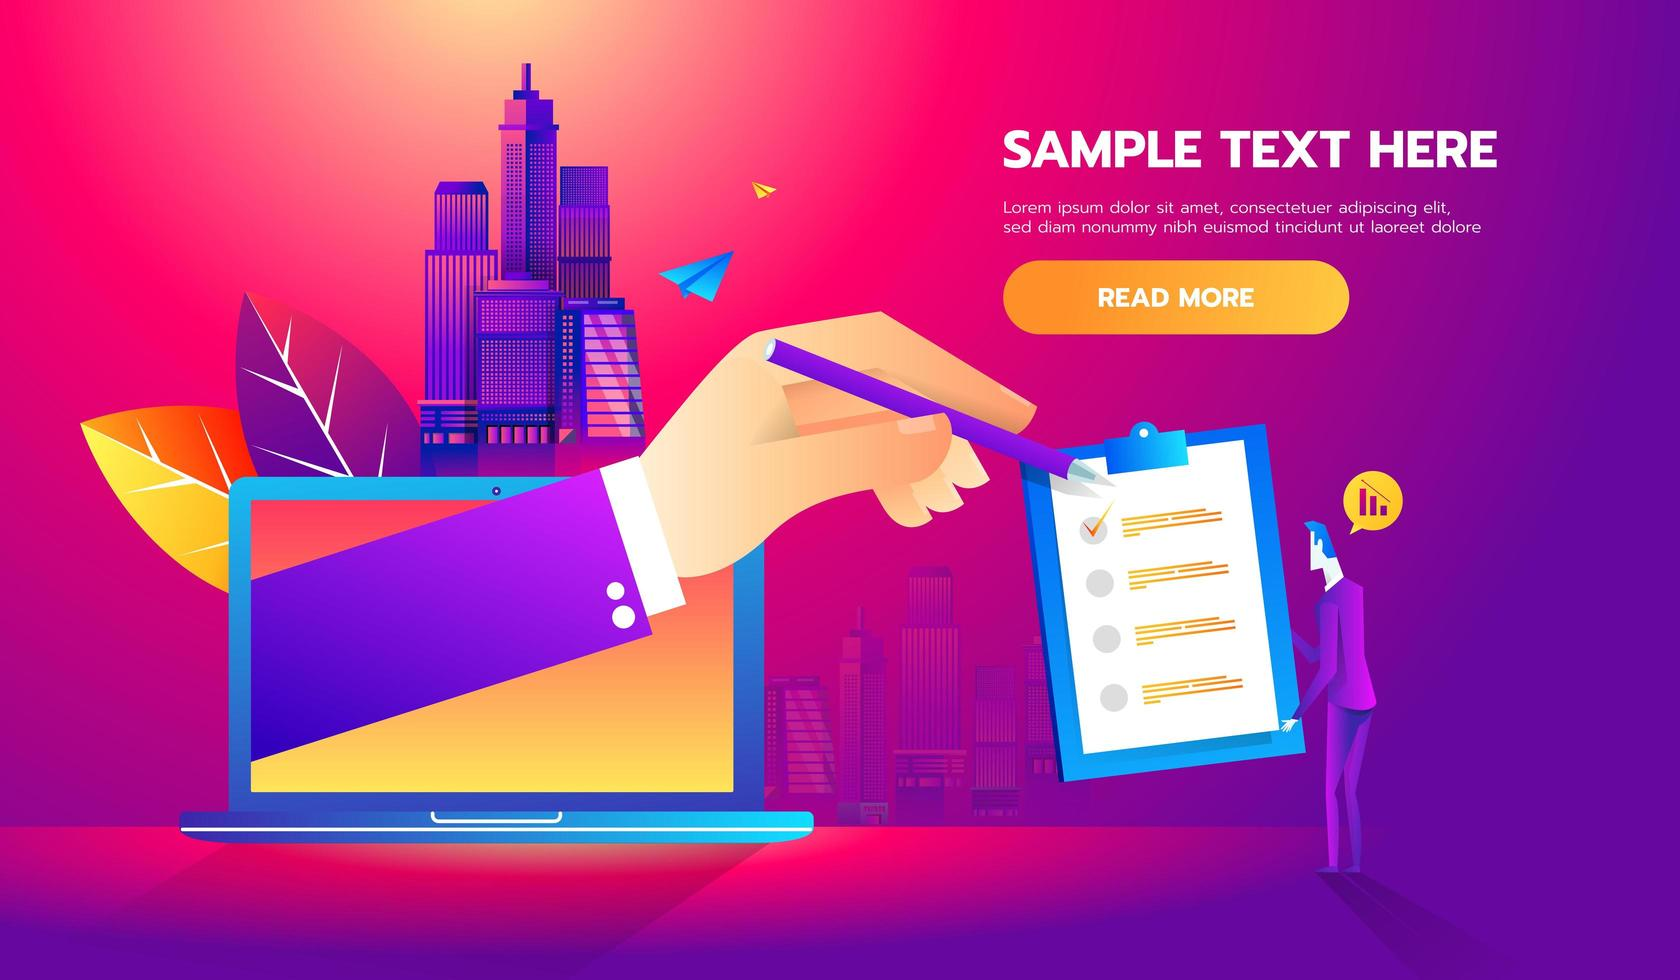 Business man partnership beginning. Partners online signing contract agreement closing deal. Modern flat style thin line vector illustration.